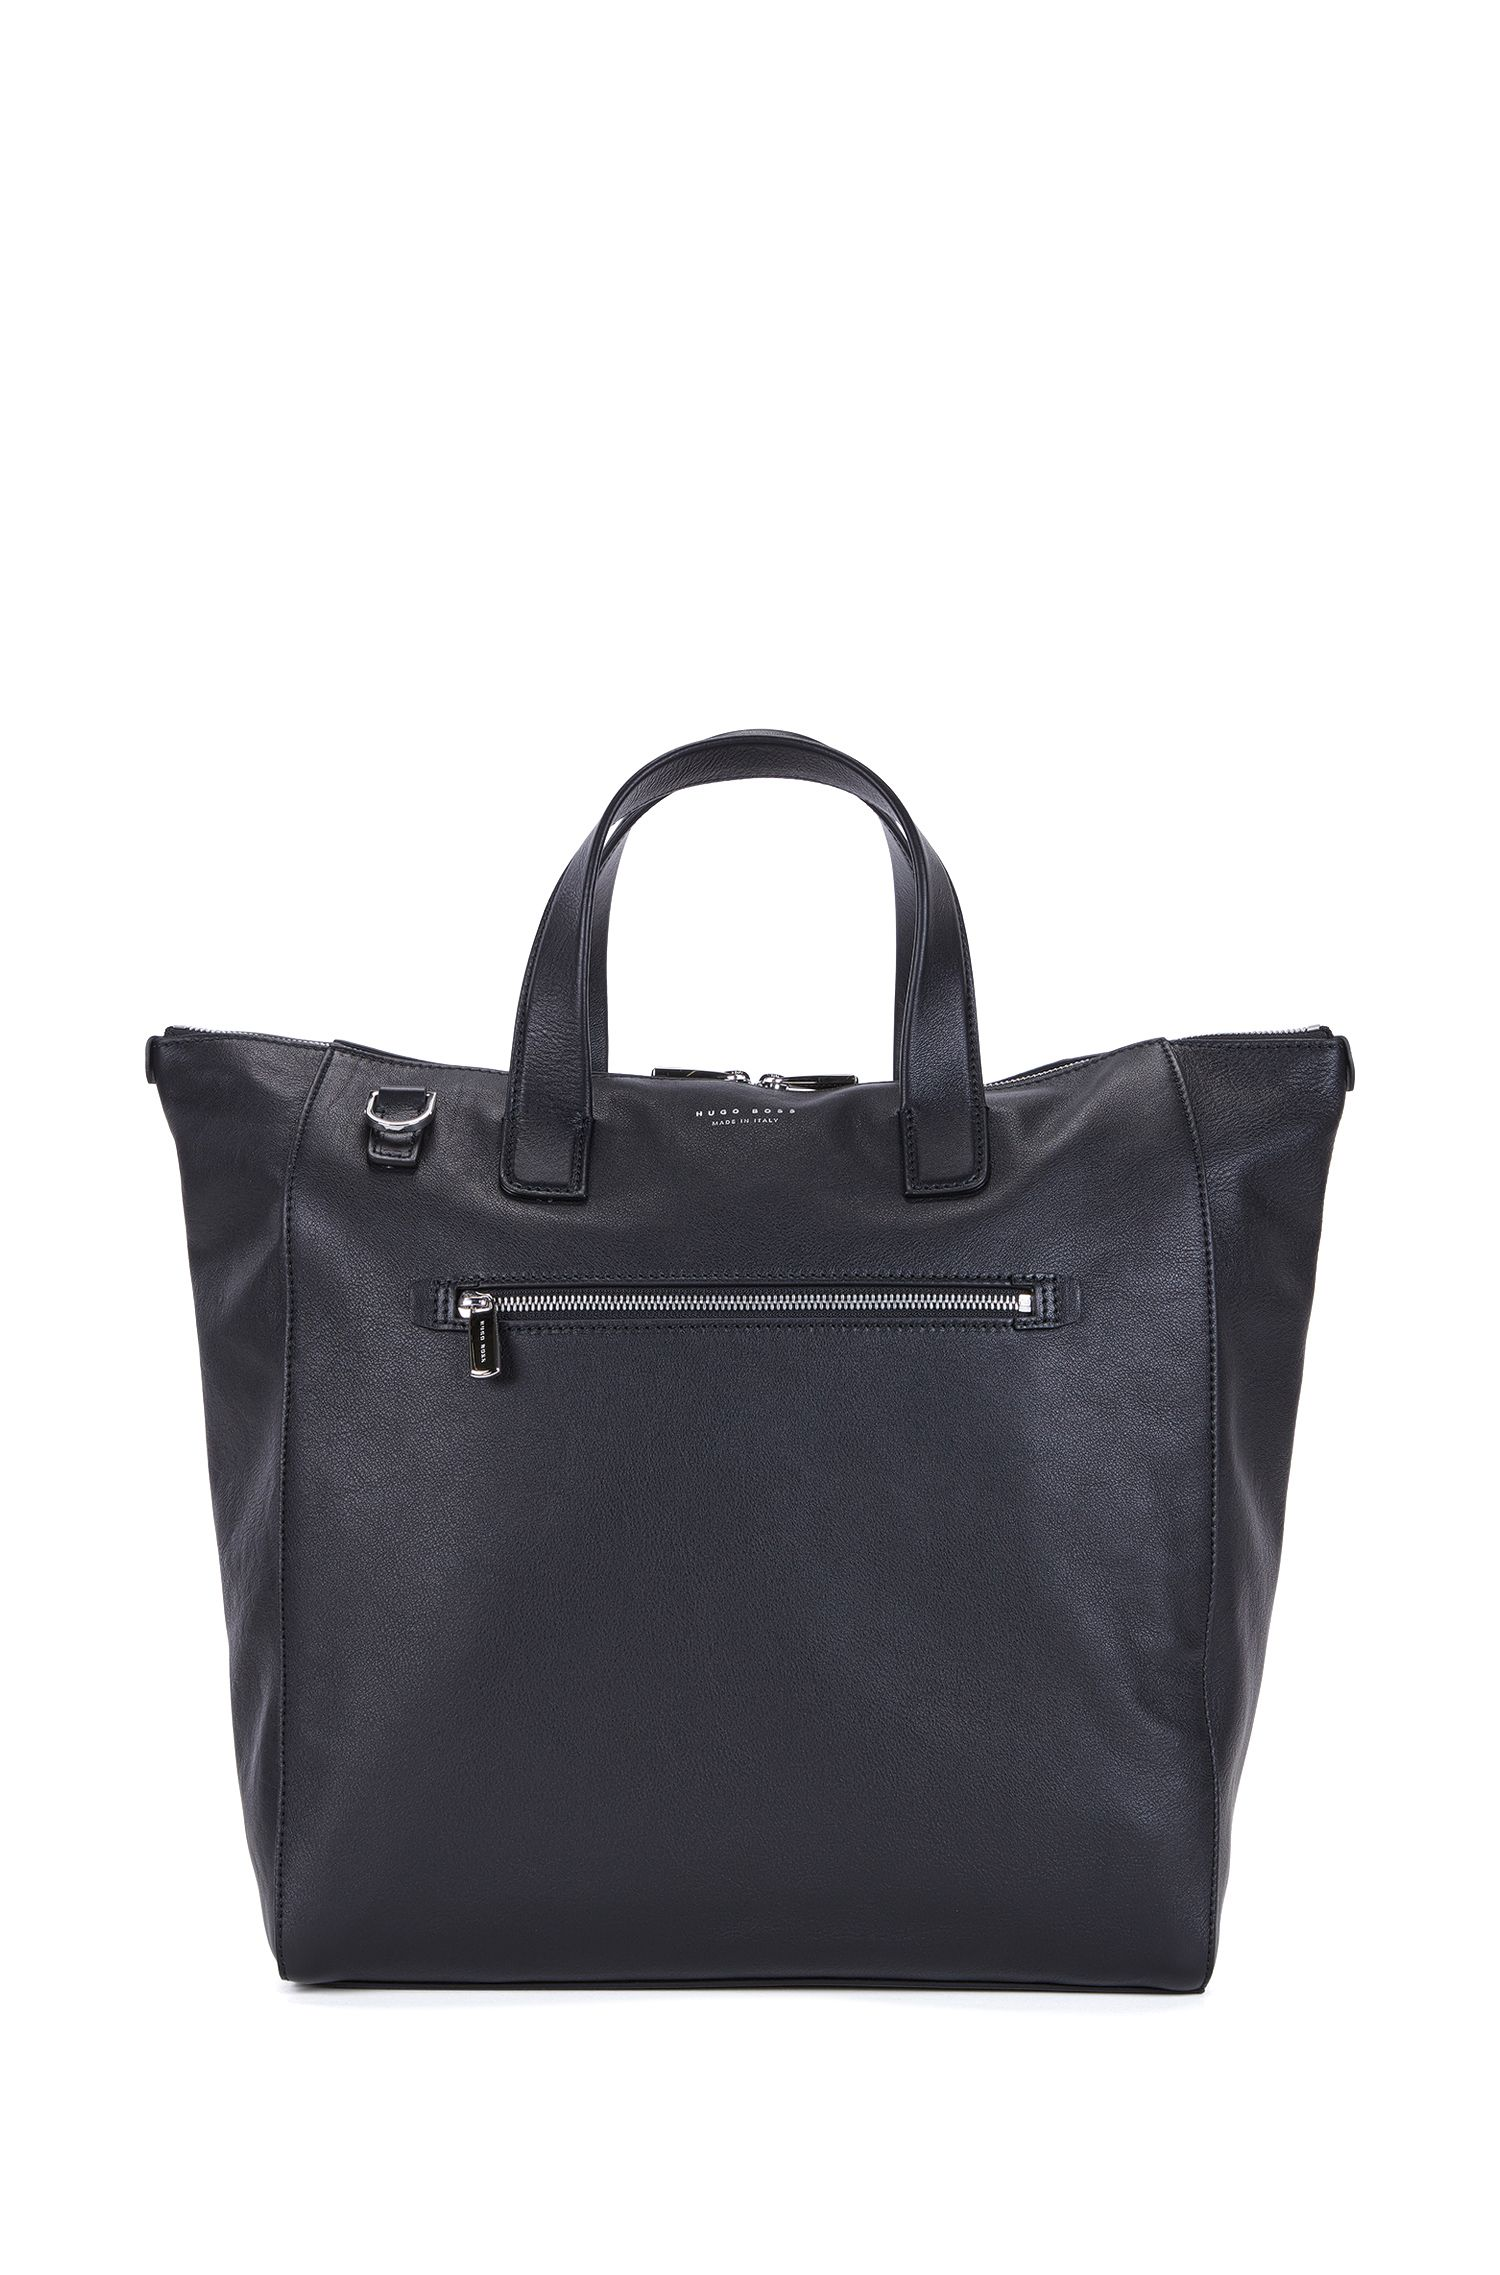 Leather tote bag with adjustable shoulder strap